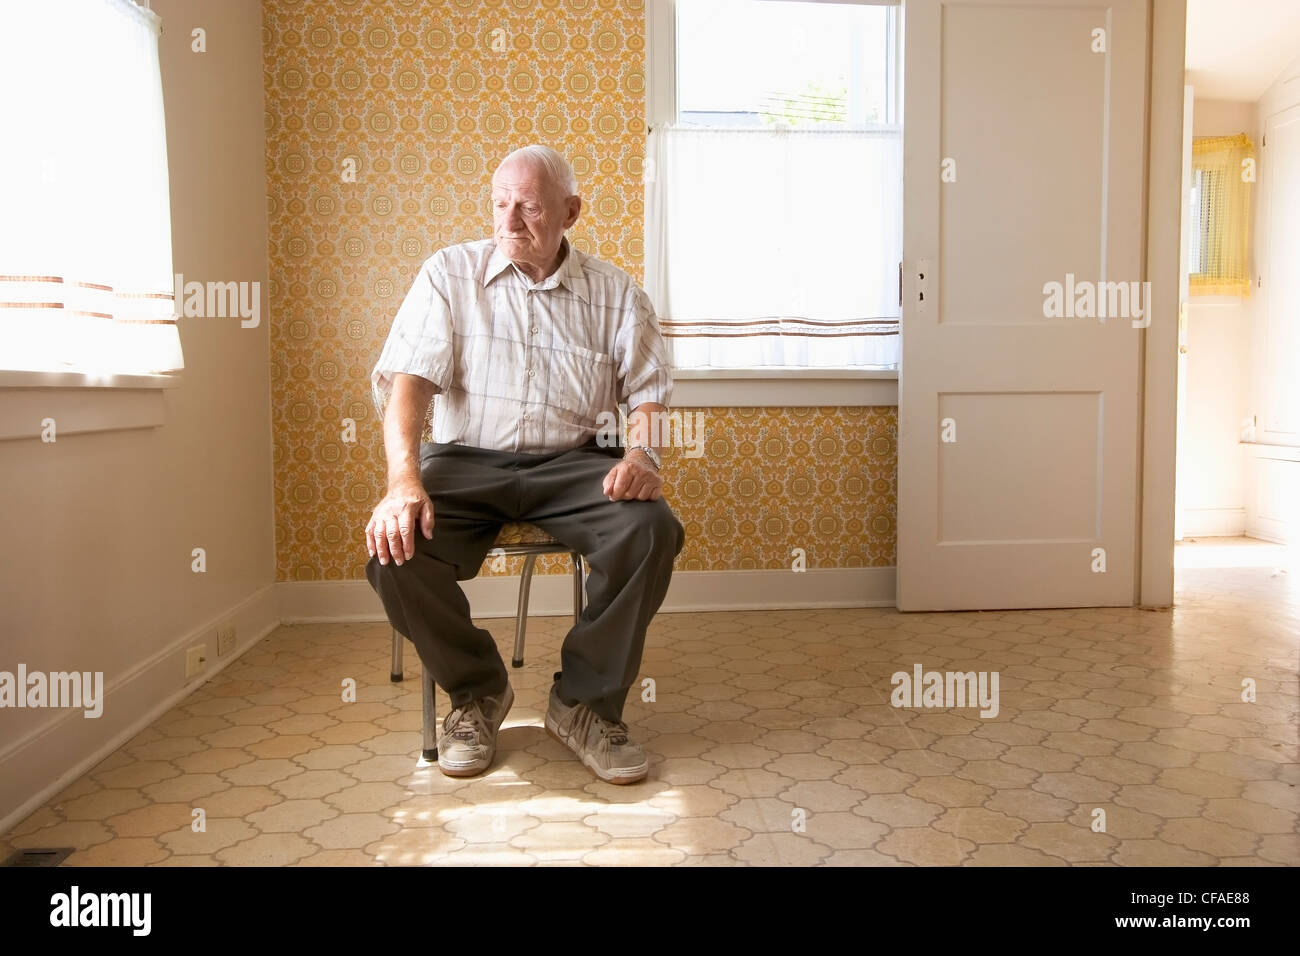 senior citizen (70-80 years old) sitting on chair in vacant house ...